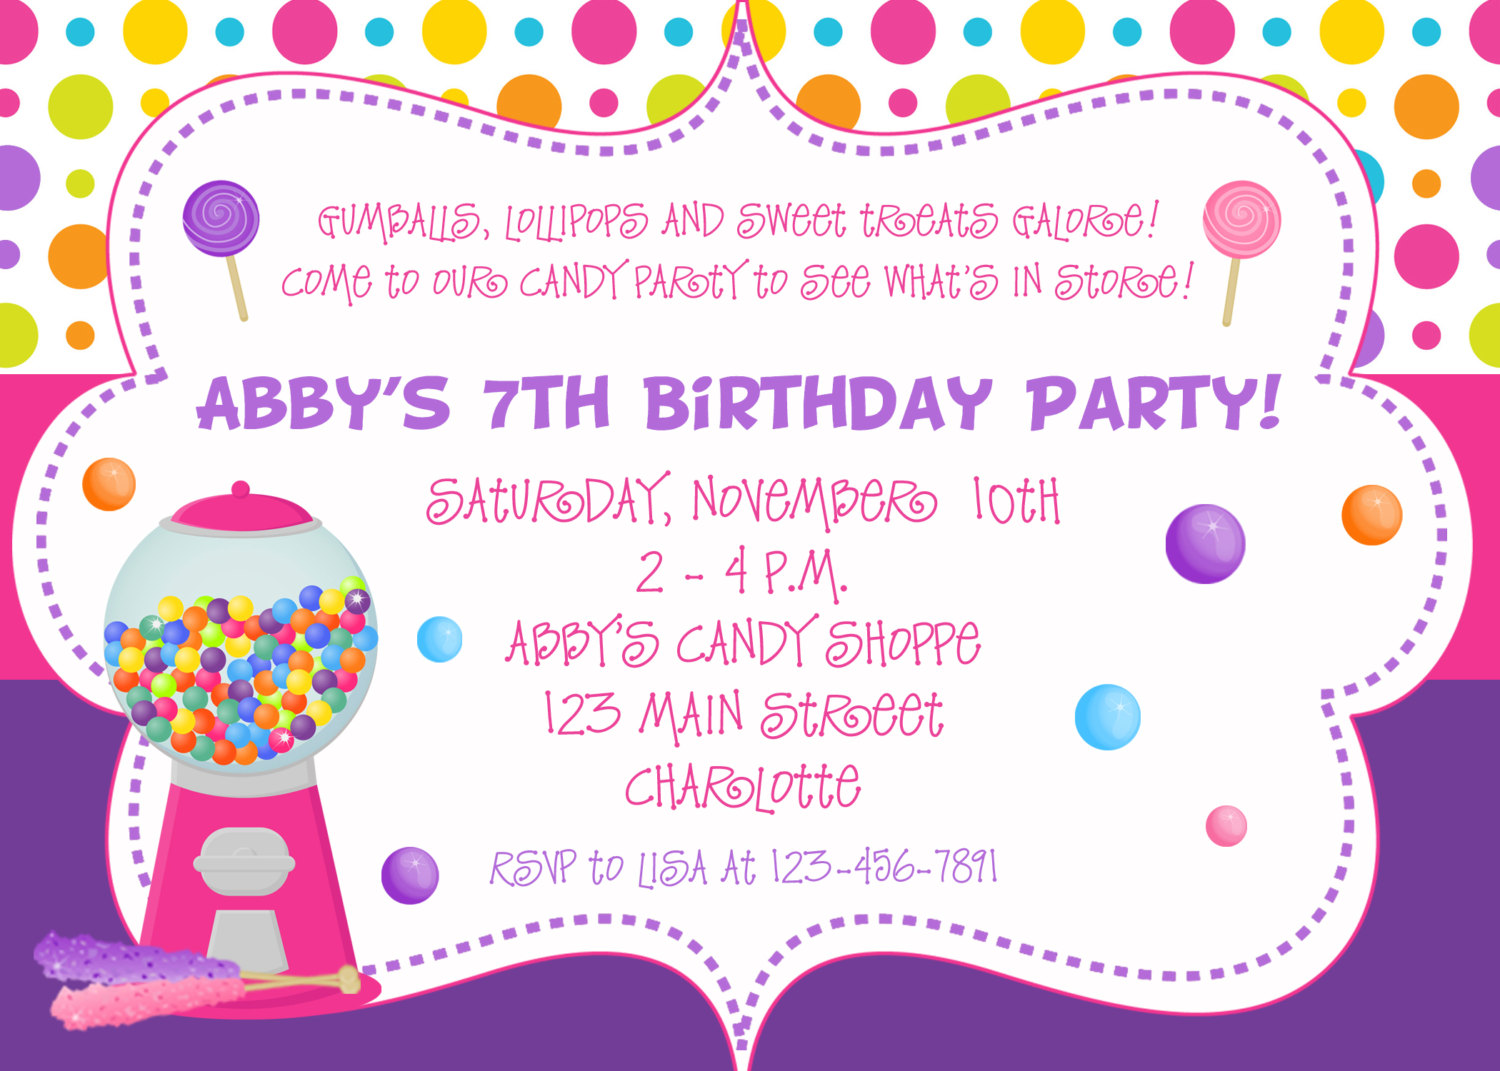 design birthday party invitations free ; Glamorous-E-Invitation-For-Birthday-Which-You-Need-To-Make-Free-Printable-Birthday-Invitations